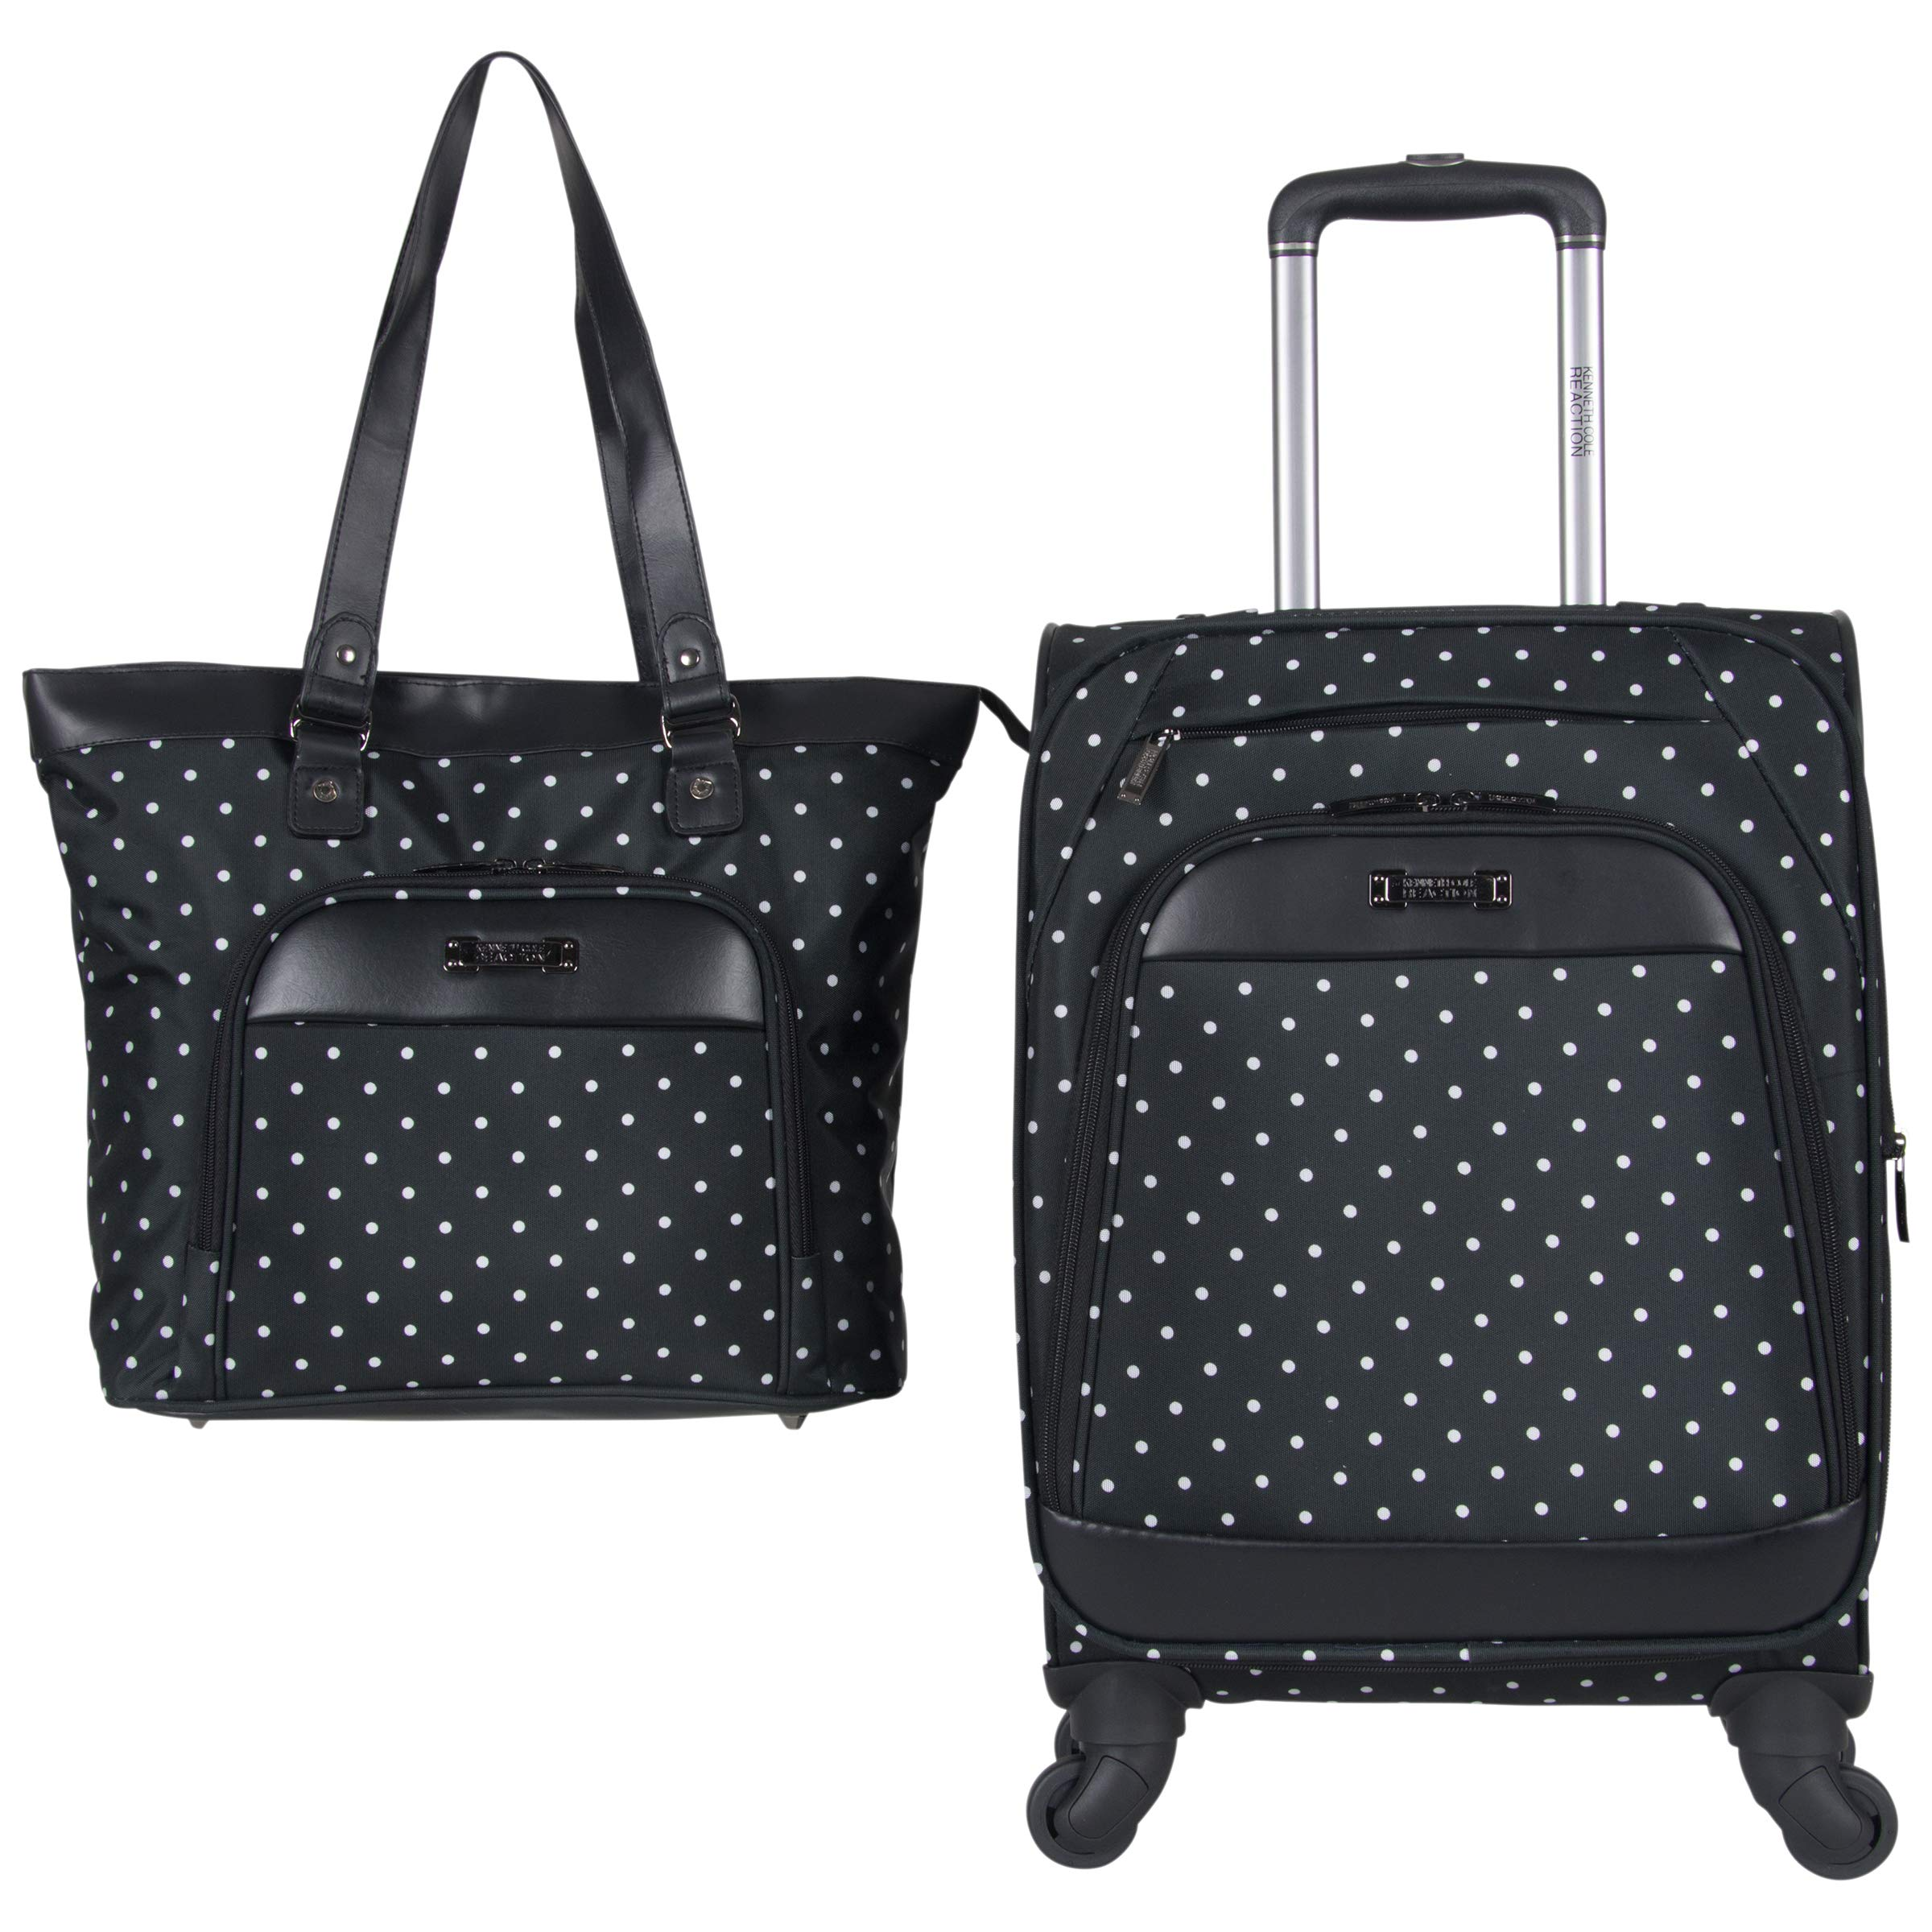 Kenneth Cole Reaction Dot Matrix 600d Polyester 2-Piece Luggage Set; Laptop Tote, 20'' Carry-on, Black W/White Polka Dots